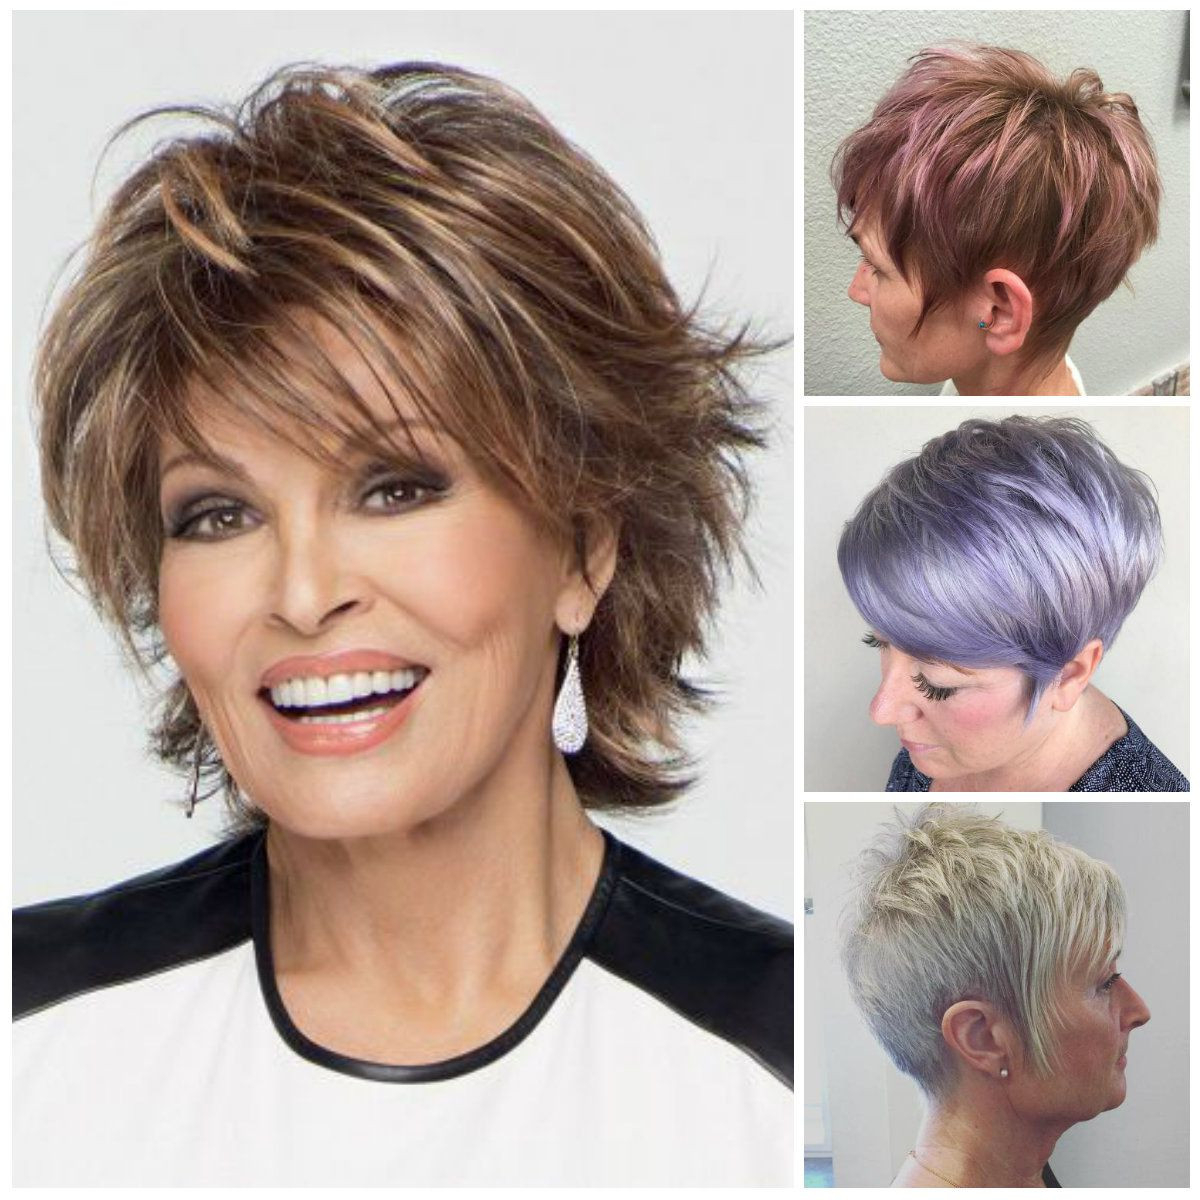 New 2017 Short Hairstyles For Women Over 50 – Uternity pertaining to Short Cuts For Over 50